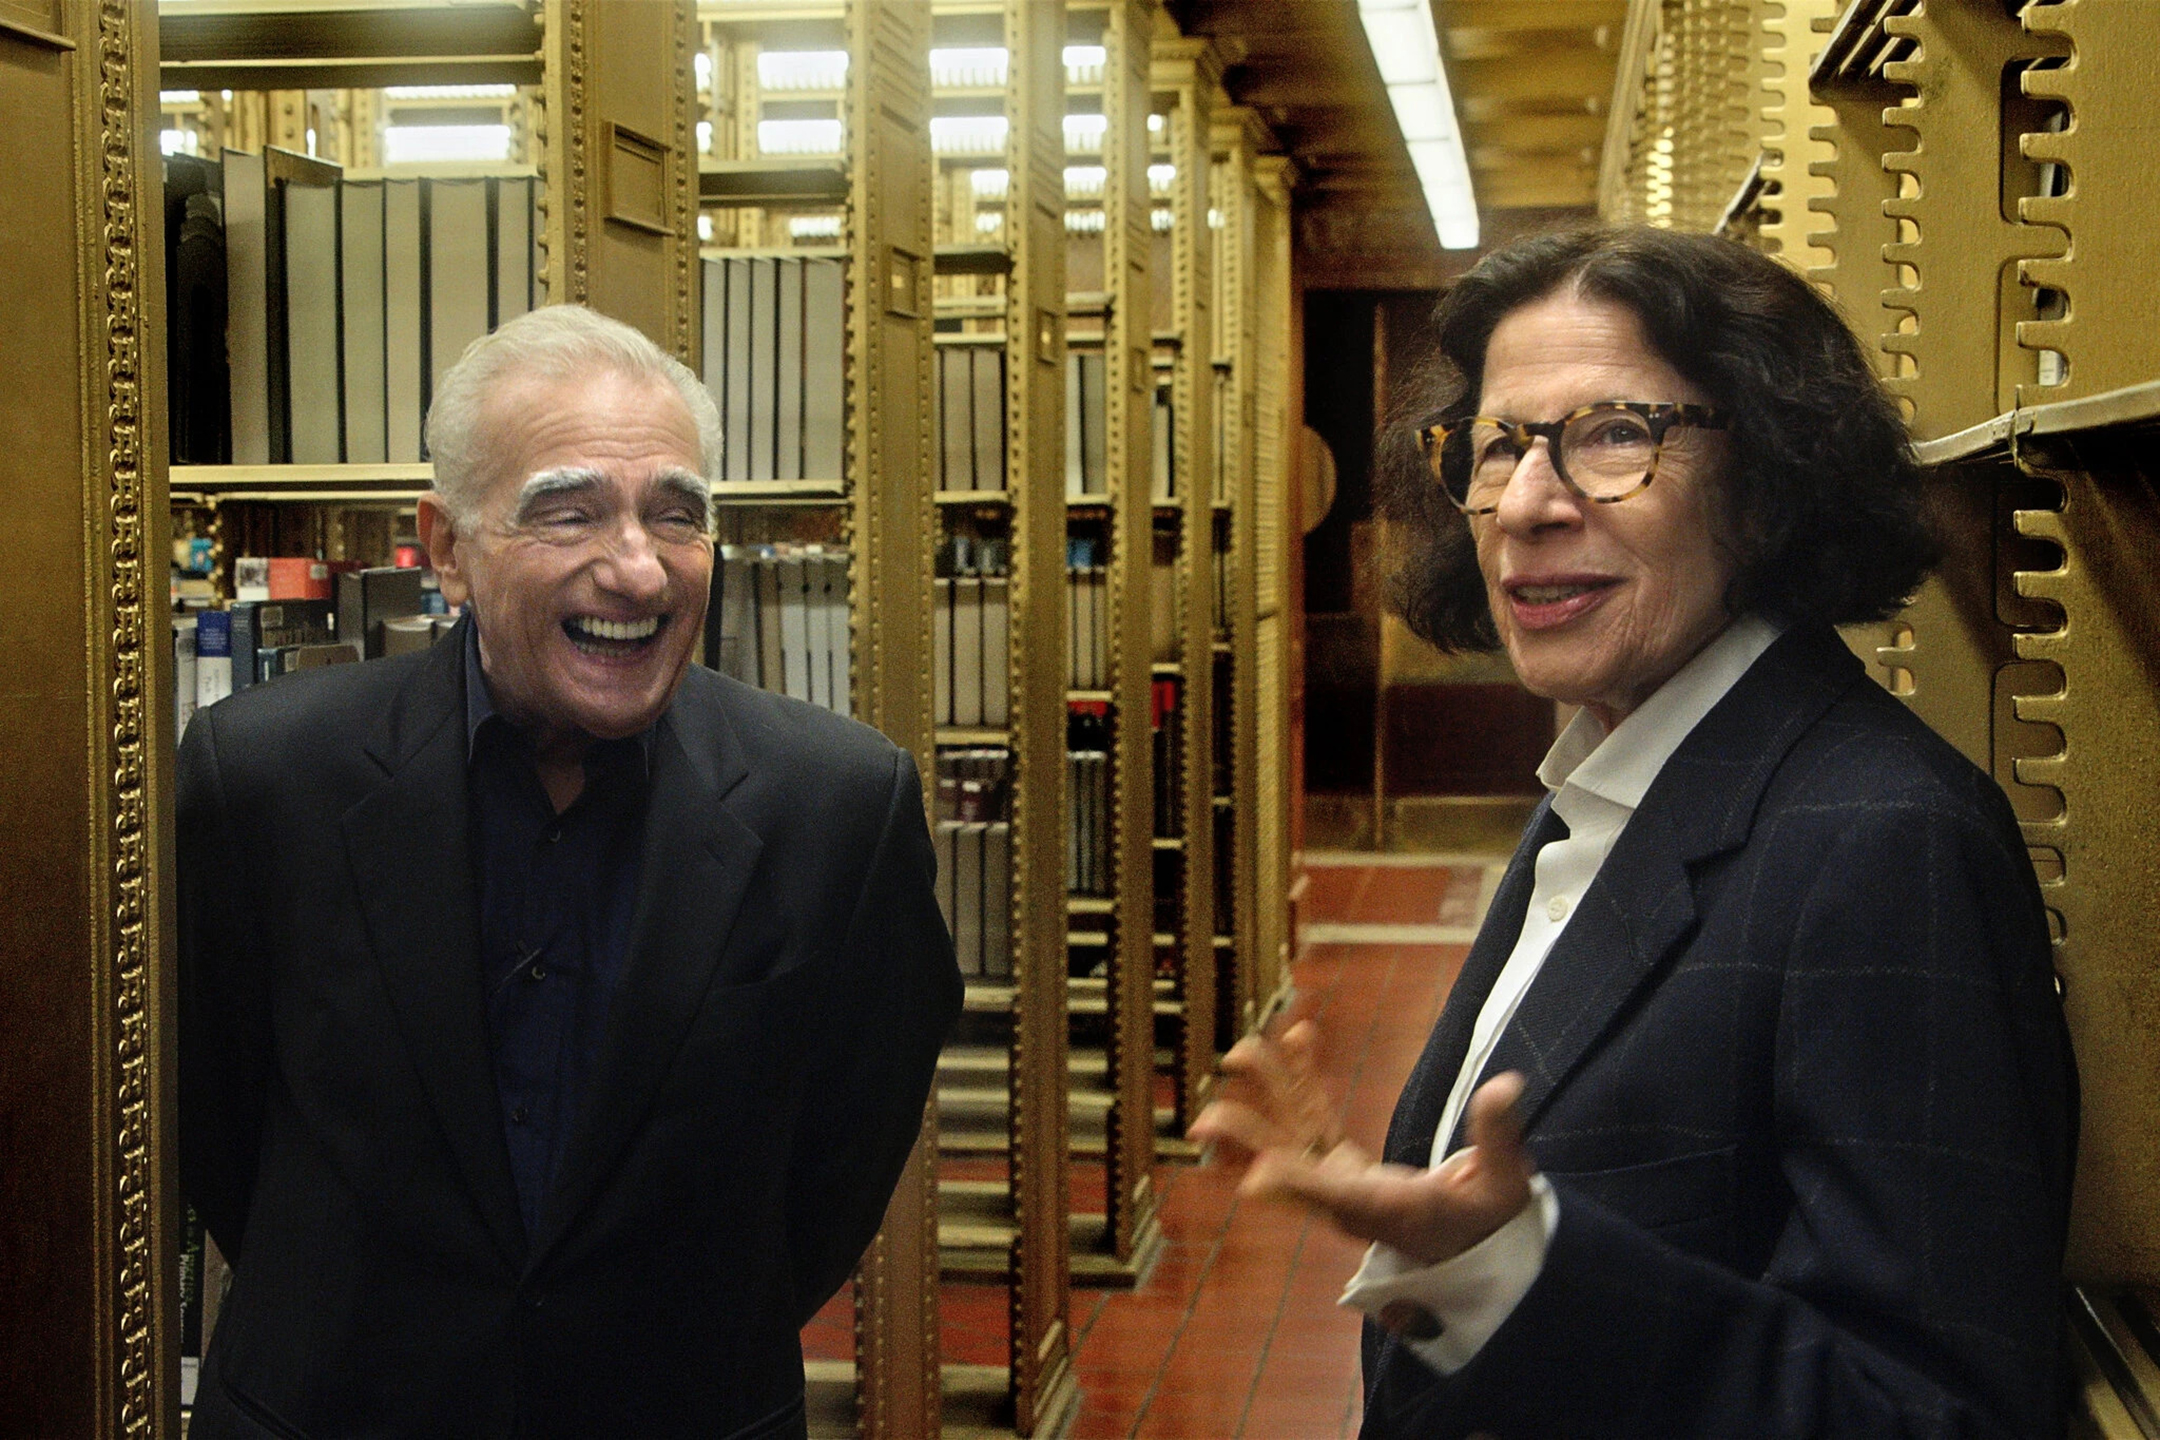 Martin Scorsese, left, laughs while Fran Lebowitz gestures while standing among the stacks of the New York Public Library